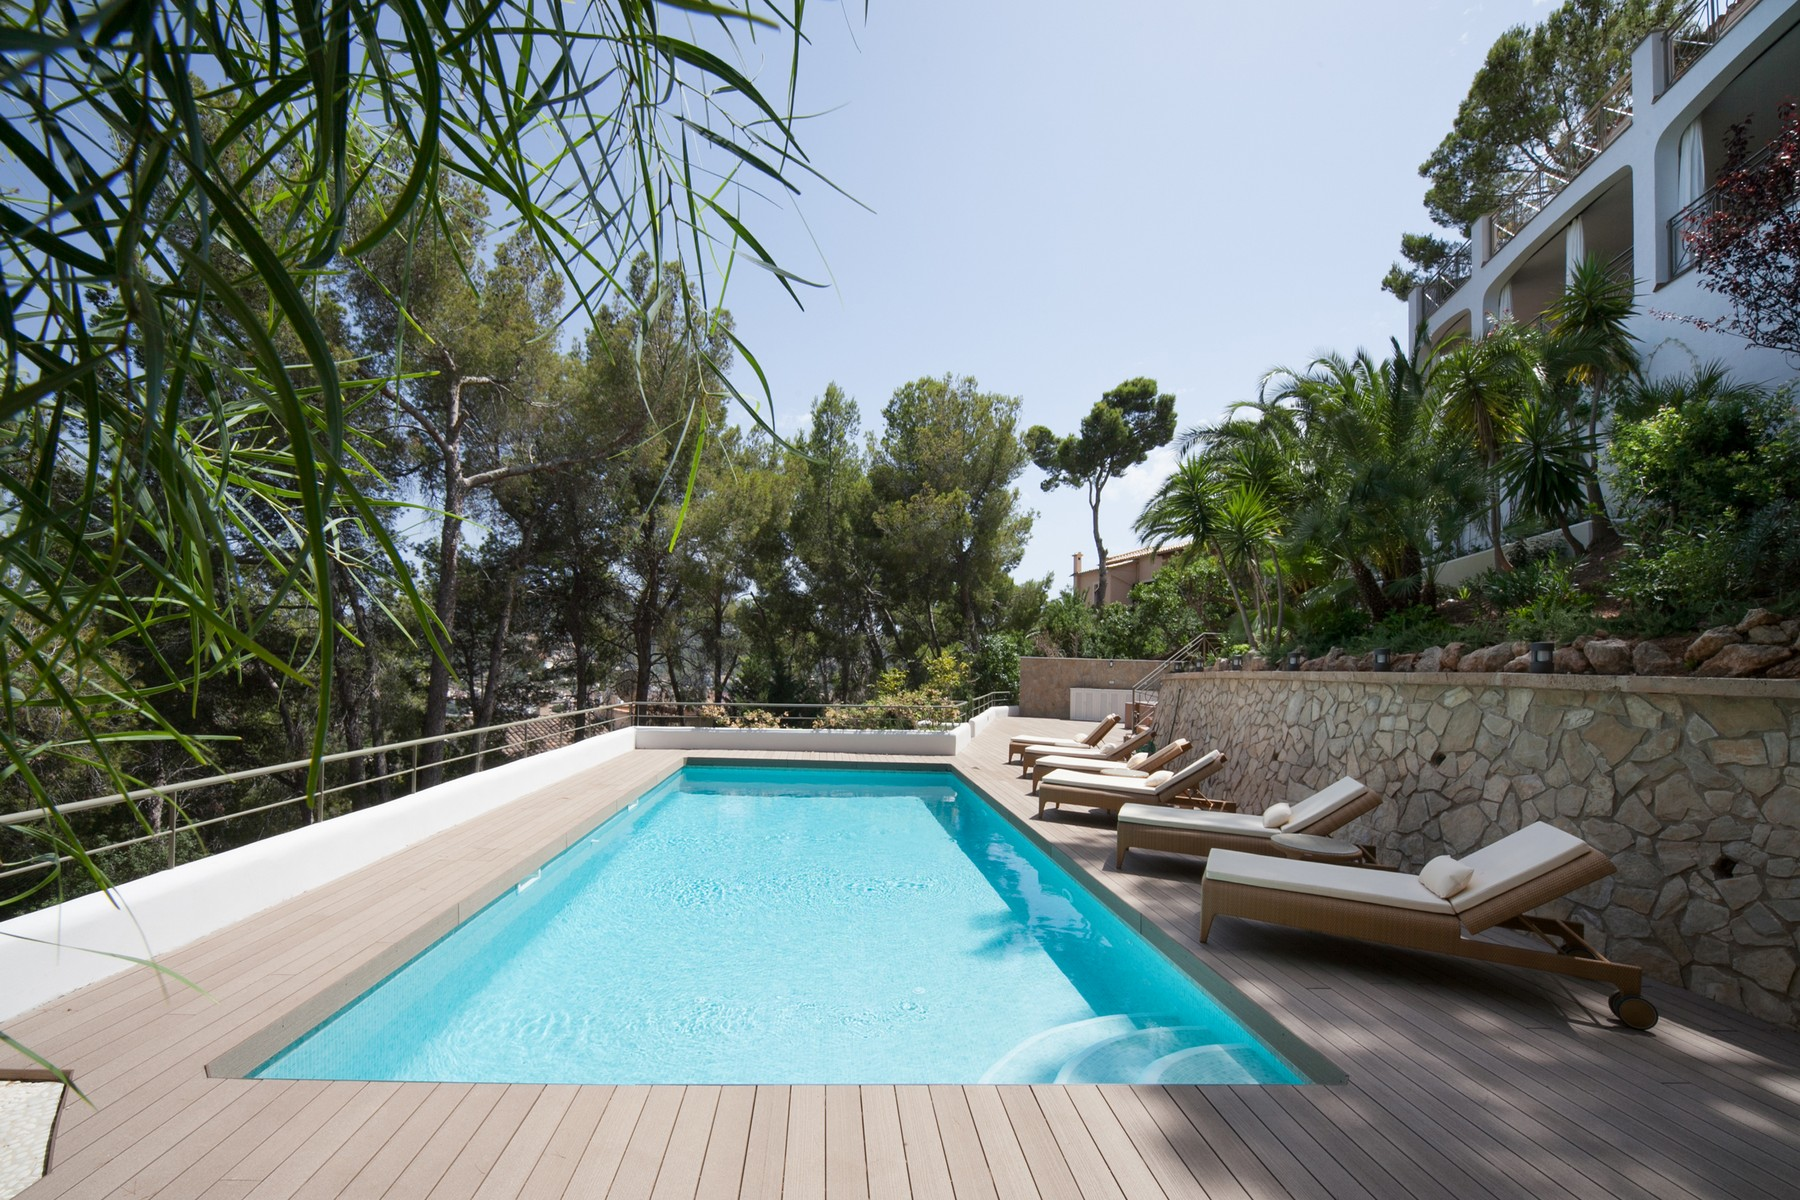 Single Family Home for Sale at Villa overlooking the harbour in Port Andratx Port Andratx, Mallorca, 07157 Spain